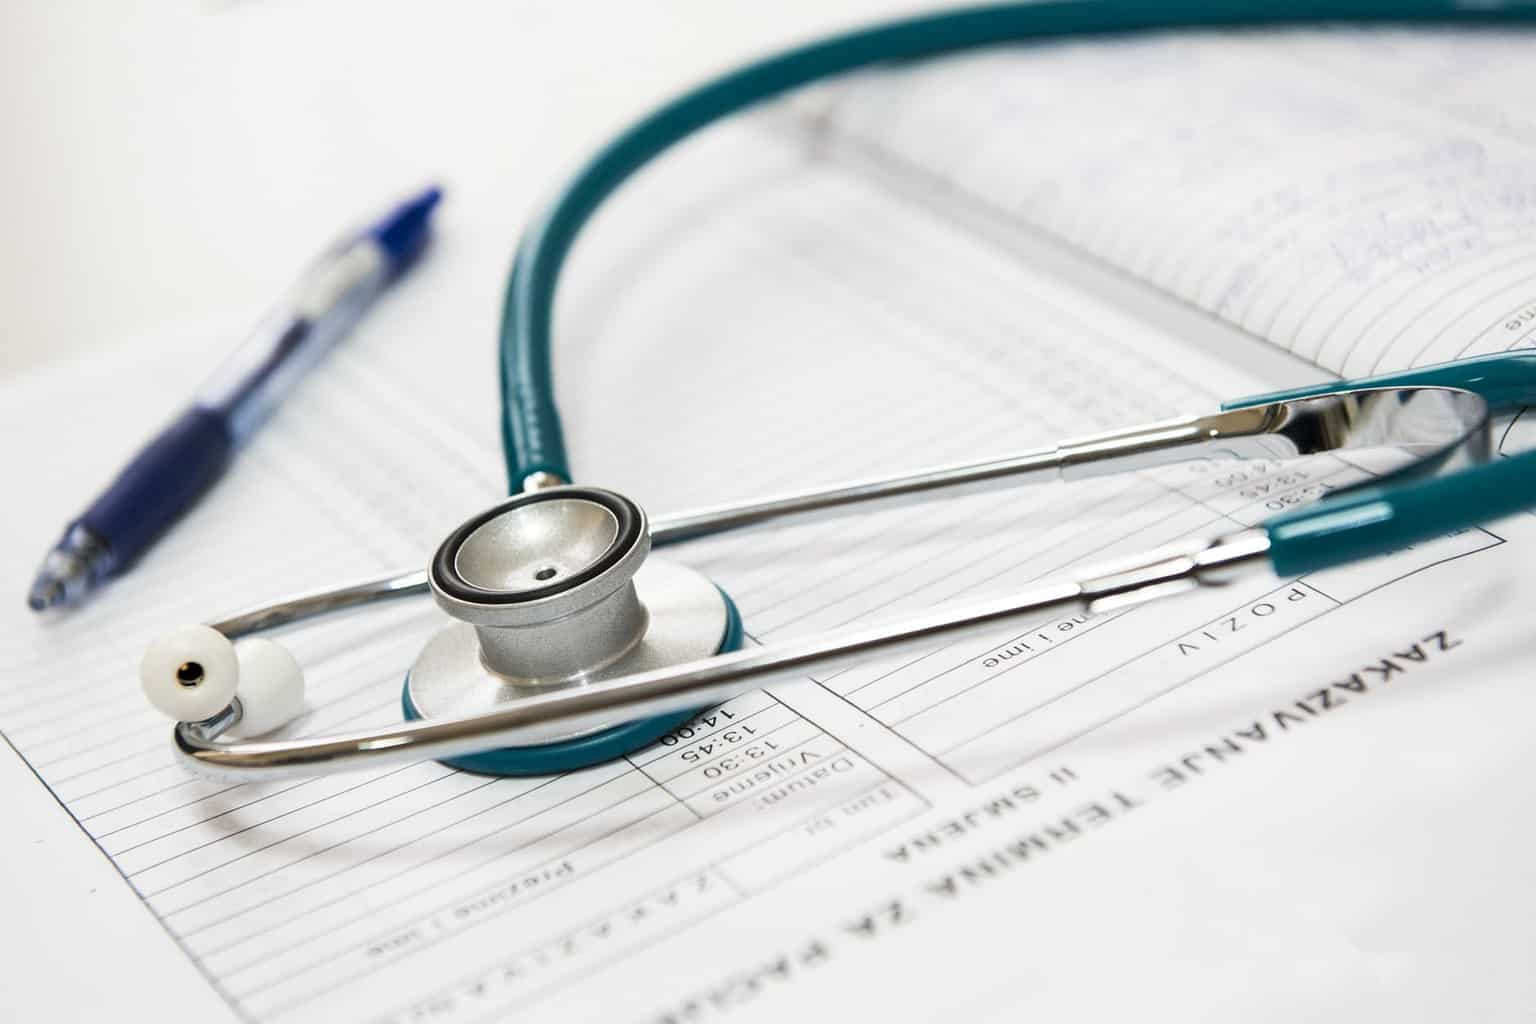 5 Common Hospital Inefficiencies and How to Solve Them